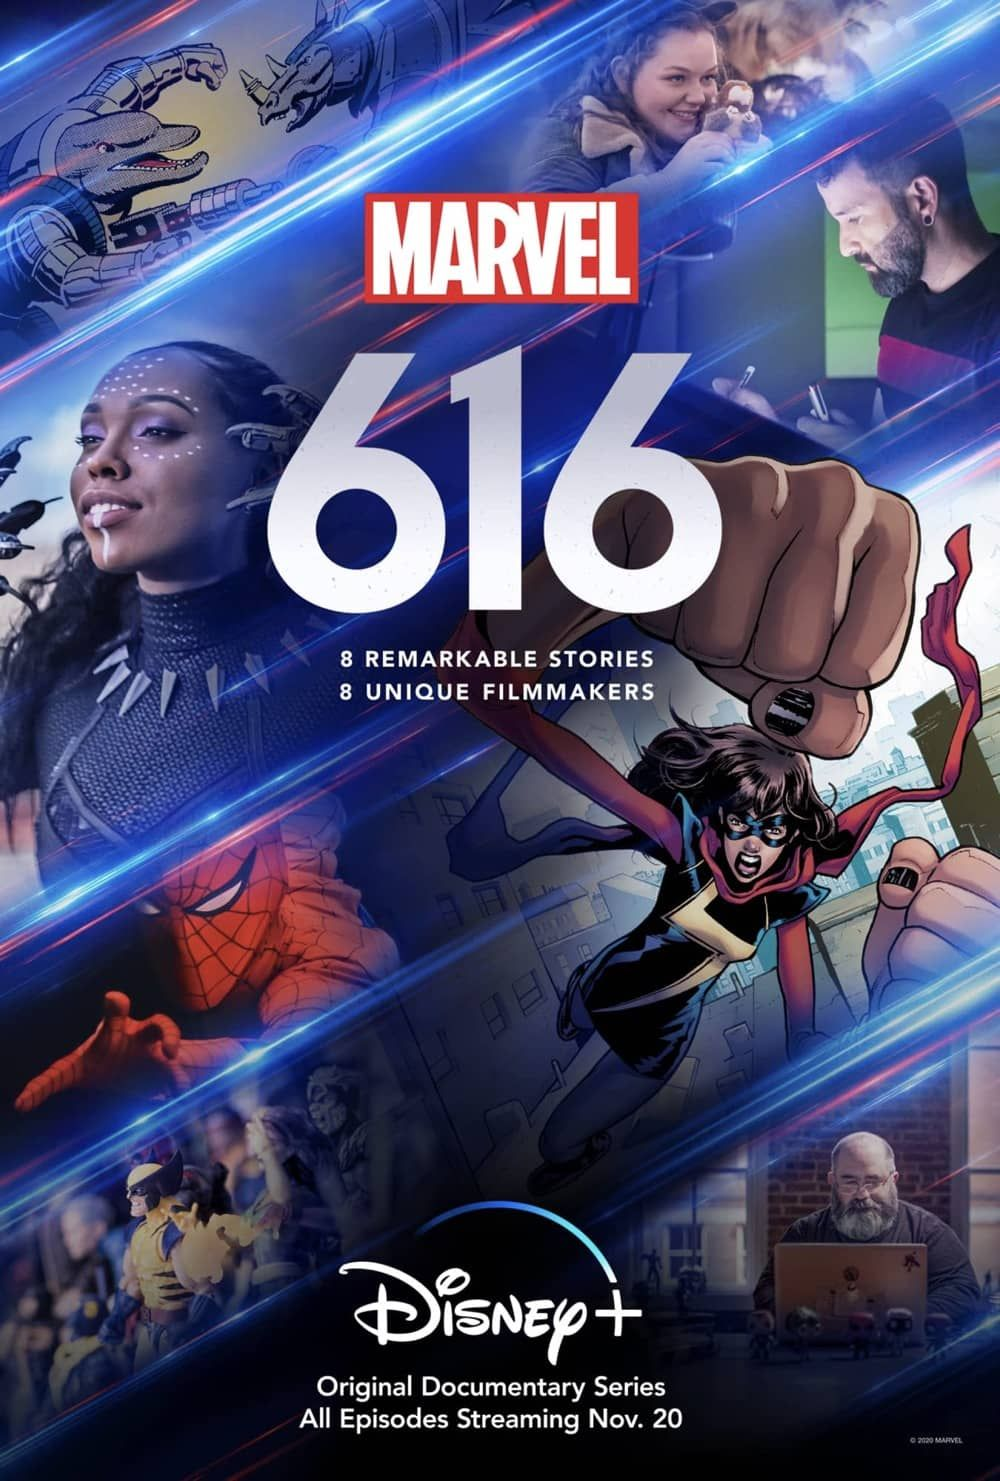 Disney releases first look trailer for marvels 616